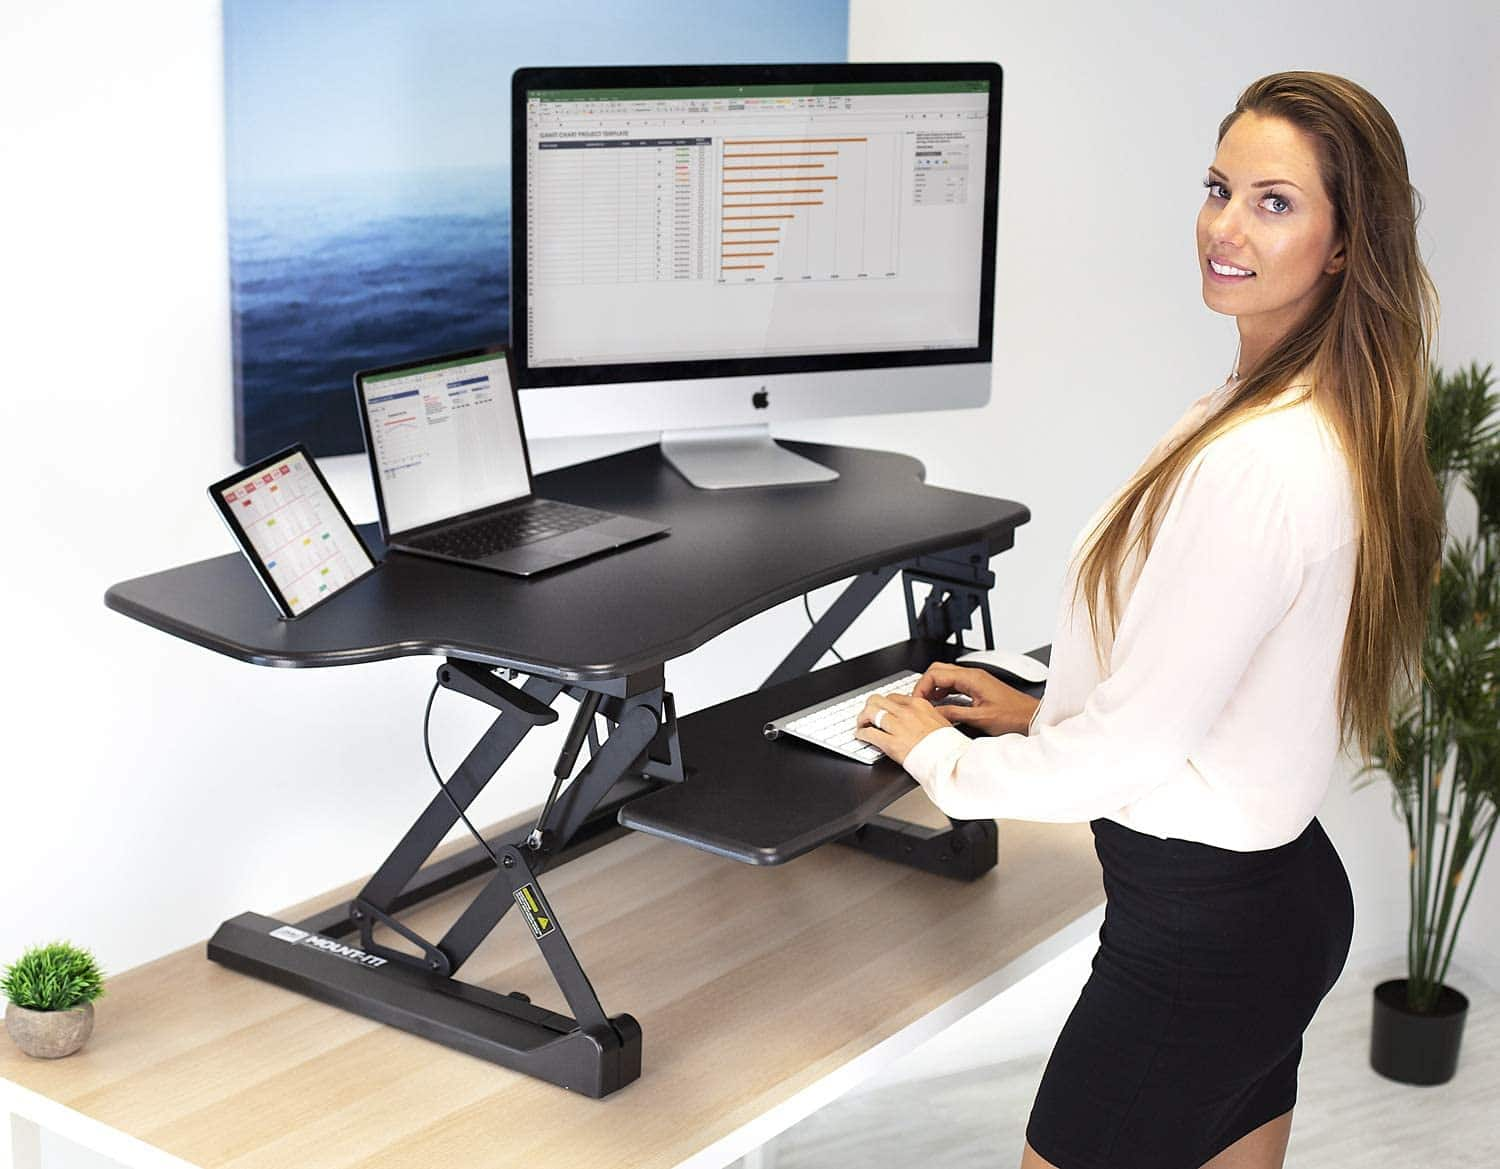 Sit stand desk for the work on the tabletop of another desk